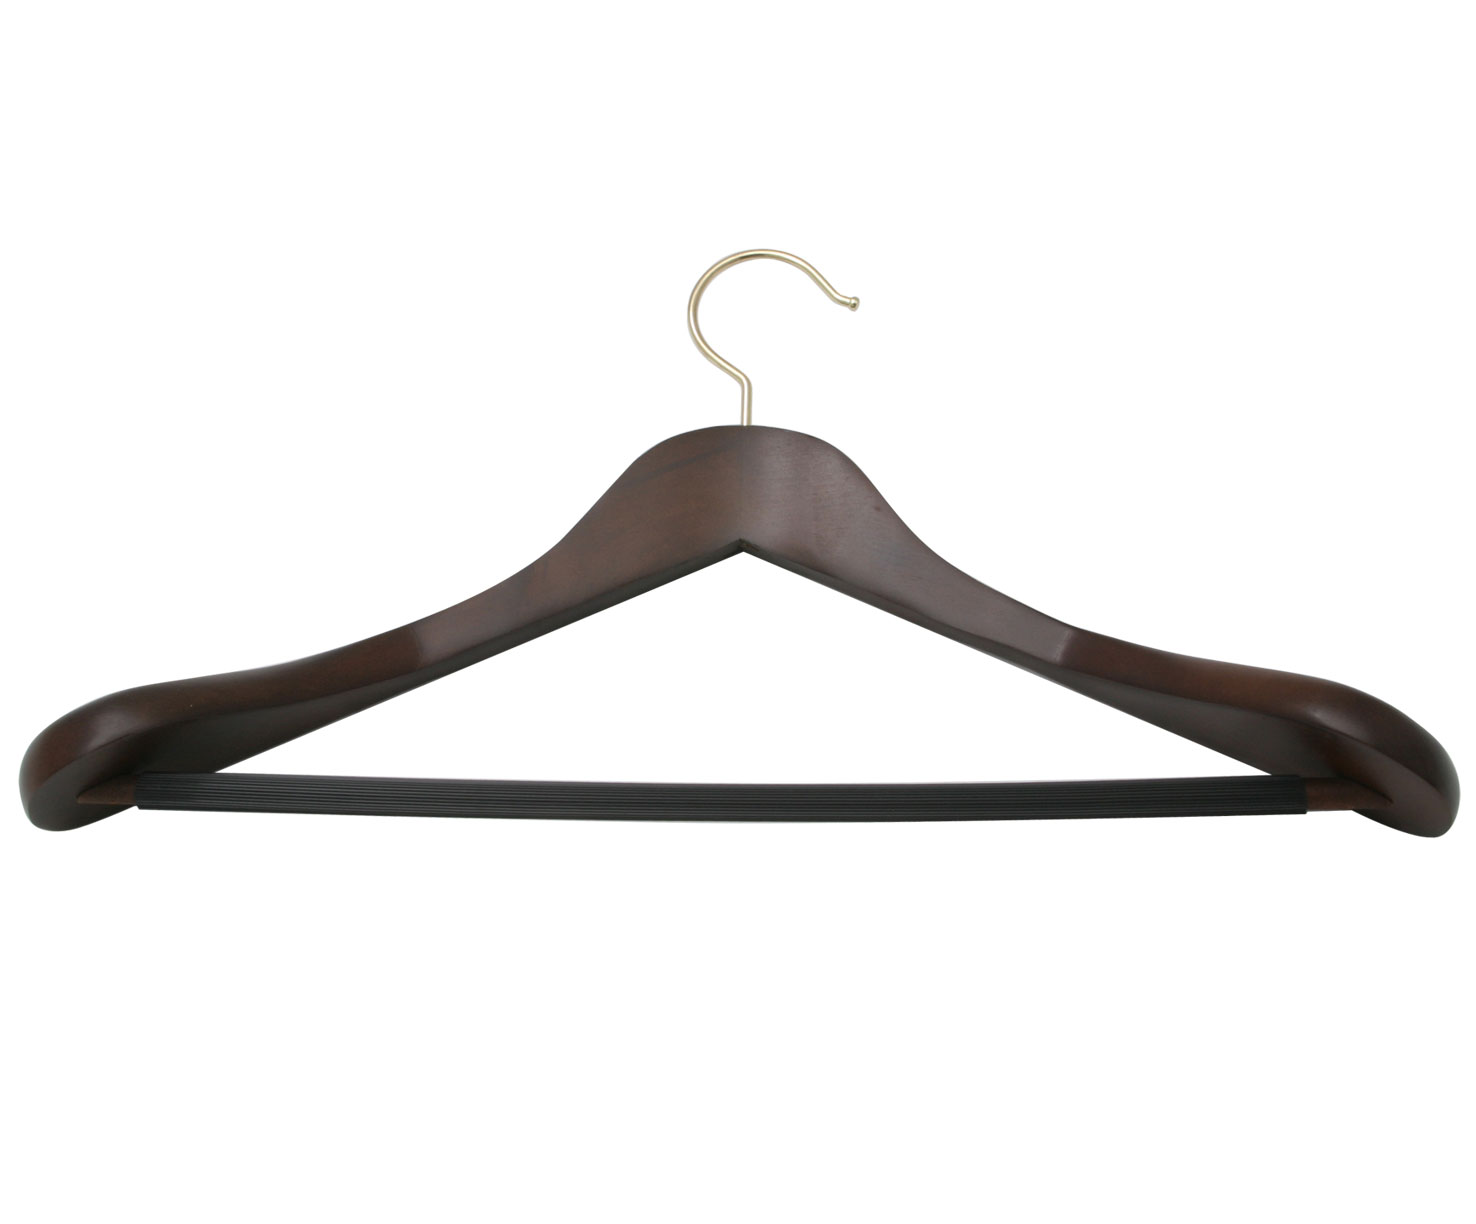 WALNUT WOOD DELUXE SUIT HANGER